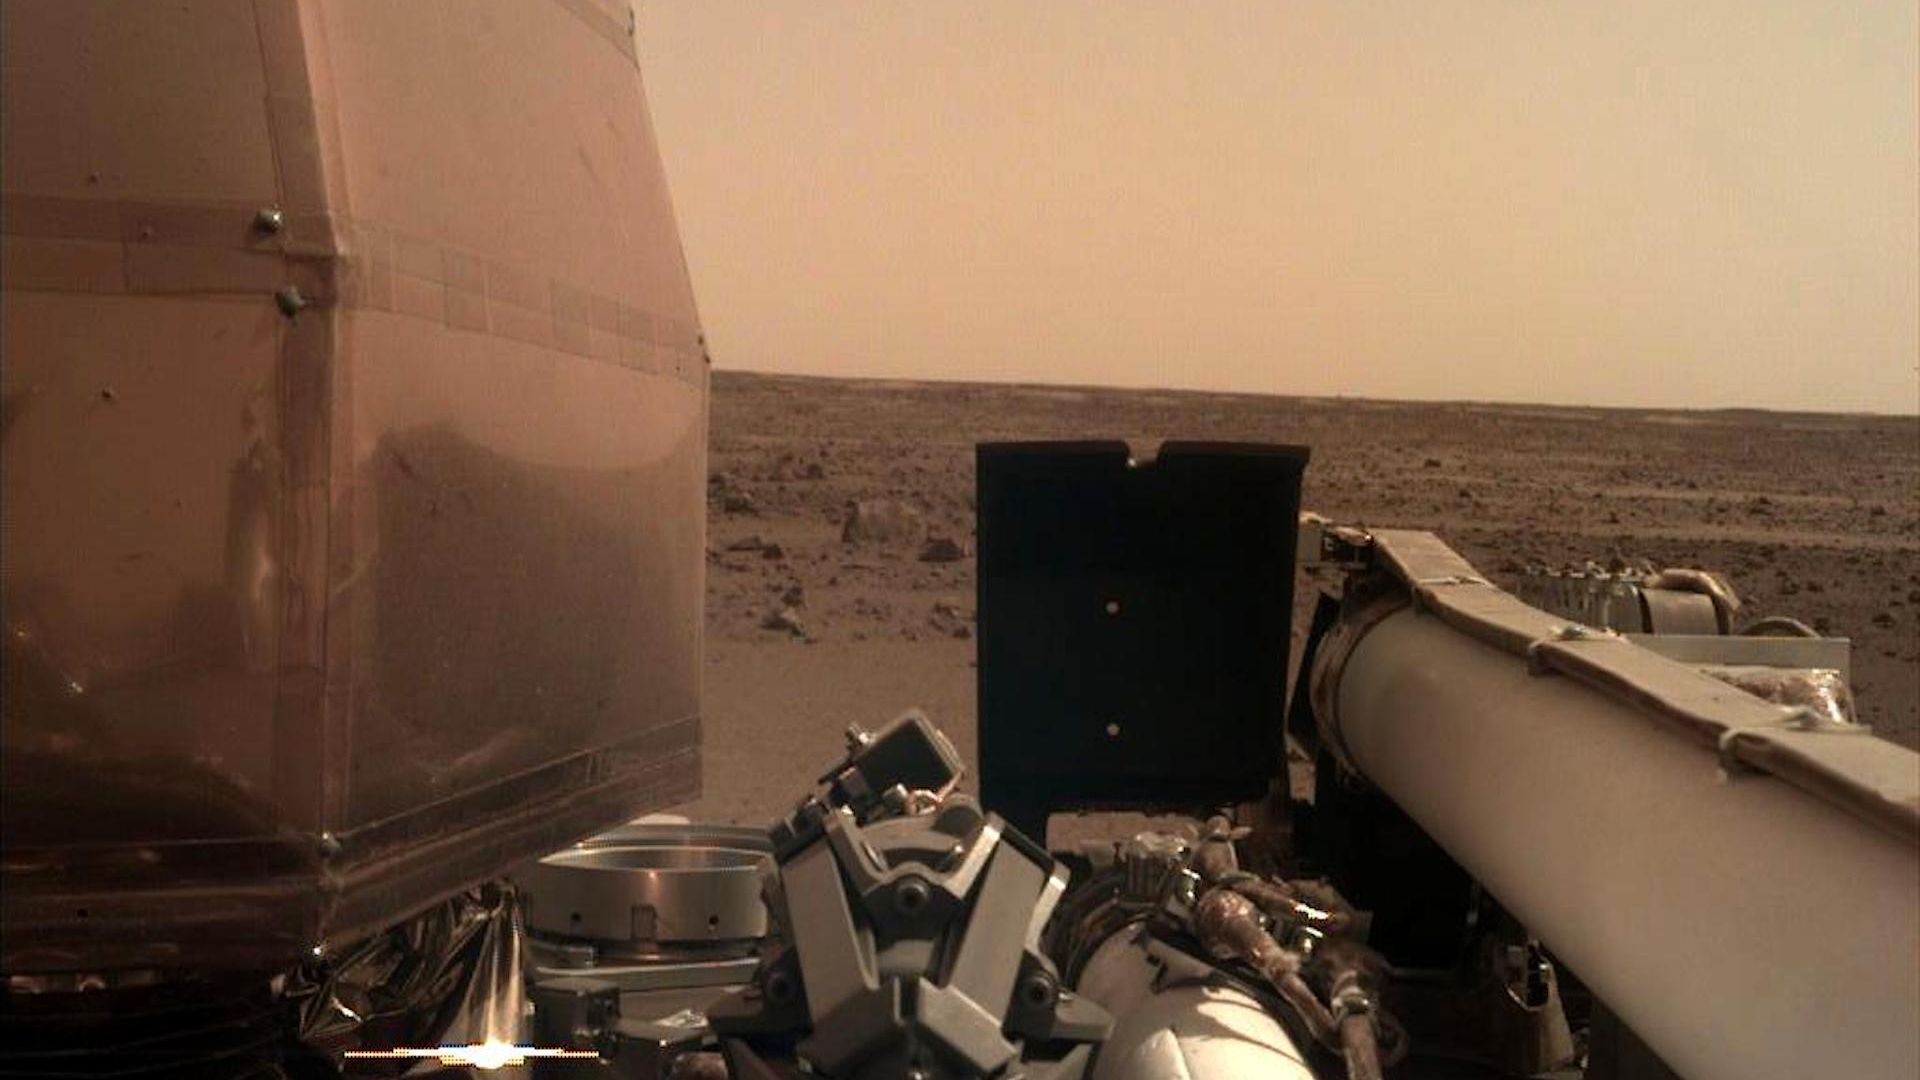 The Instrument Deployment Camera (IDC), located on the robotic arm of NASA's InSight lander, took this picture of the Martian surface on Nov. 26, 2018.